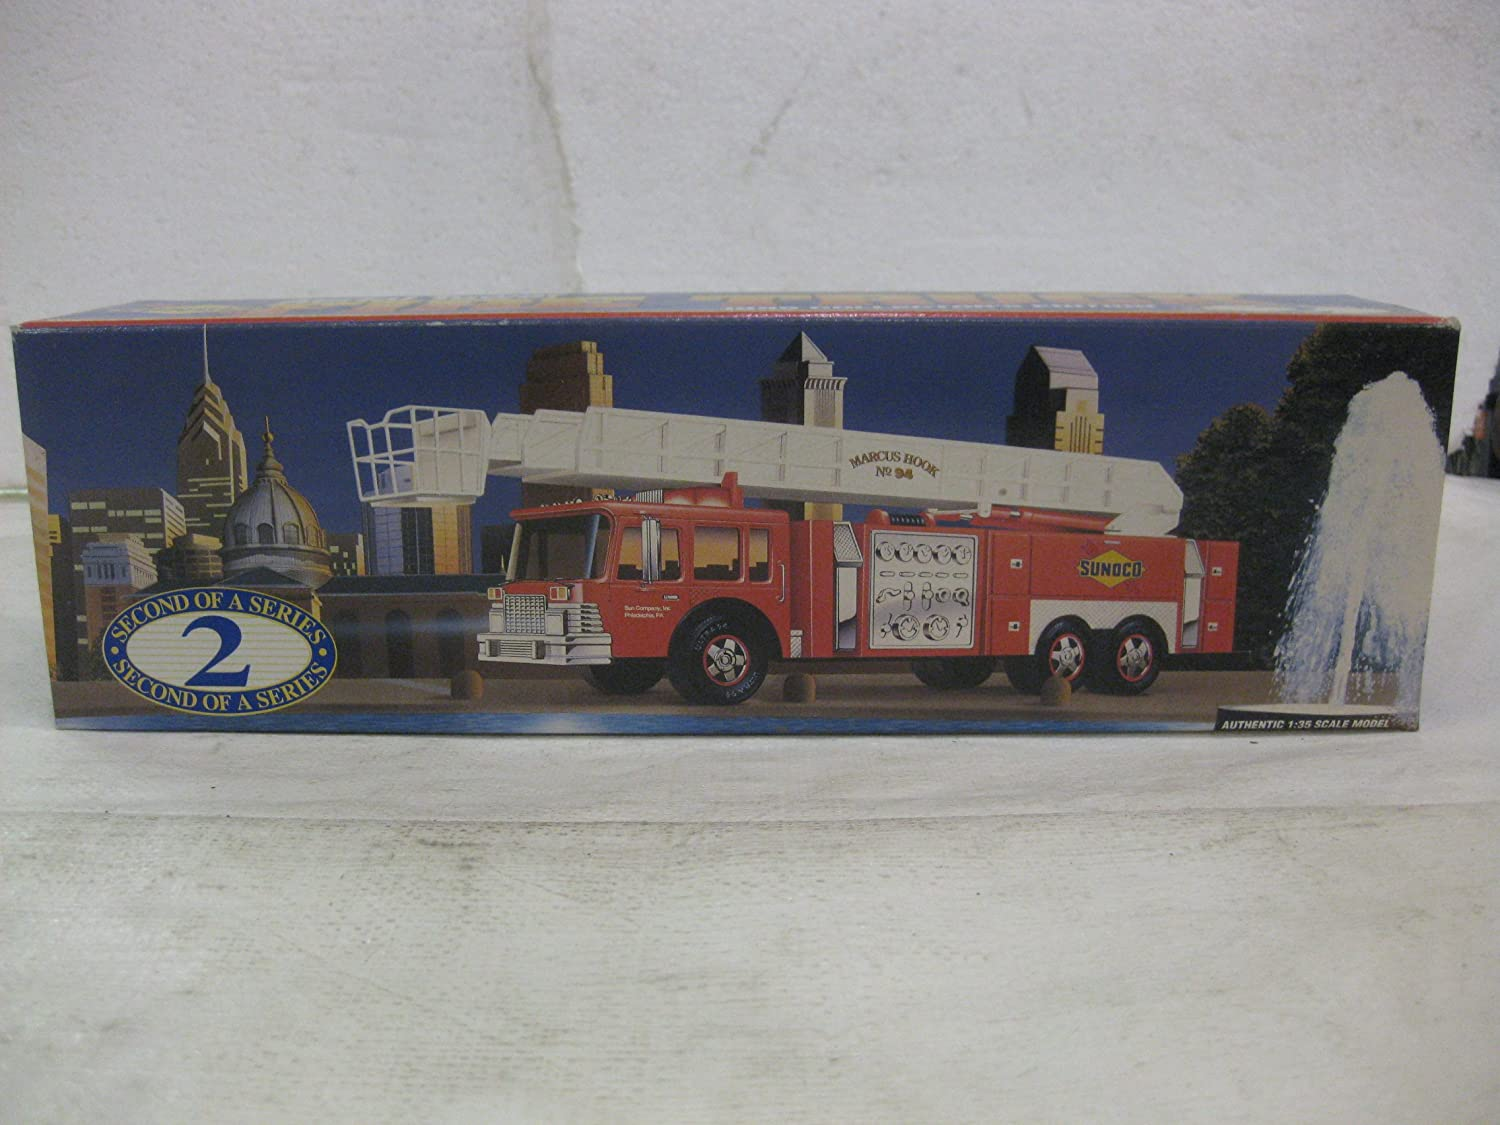 Sunoco Aerial Tower Fire Truck Second in A Series in Red 1:35 Scale by Sun Company